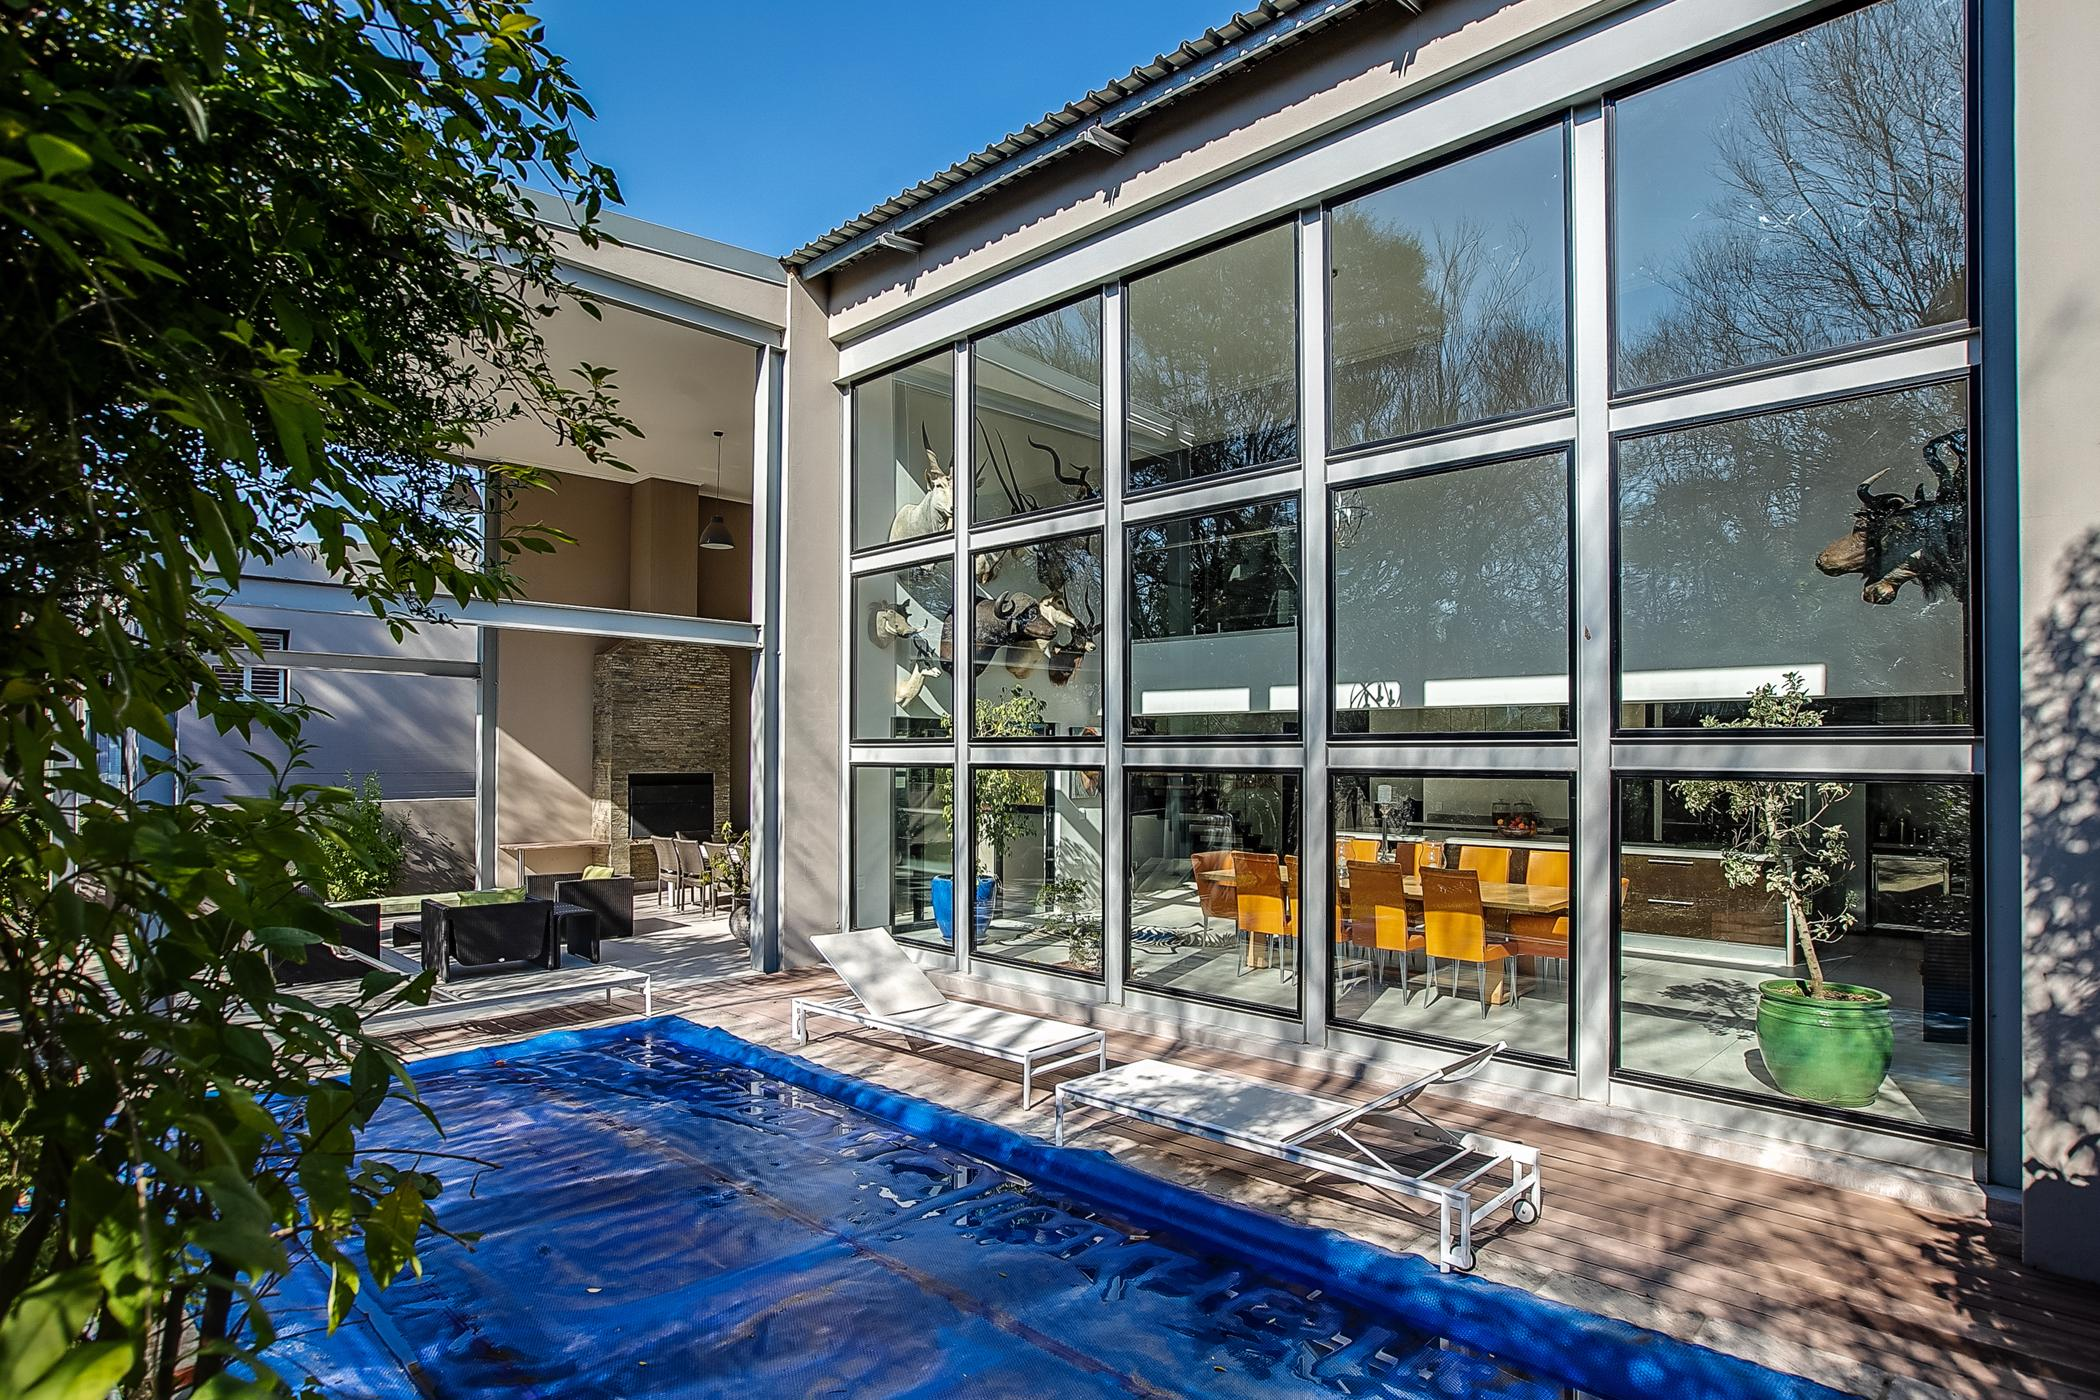 4 bedroom cluster house for sale in Bryanston